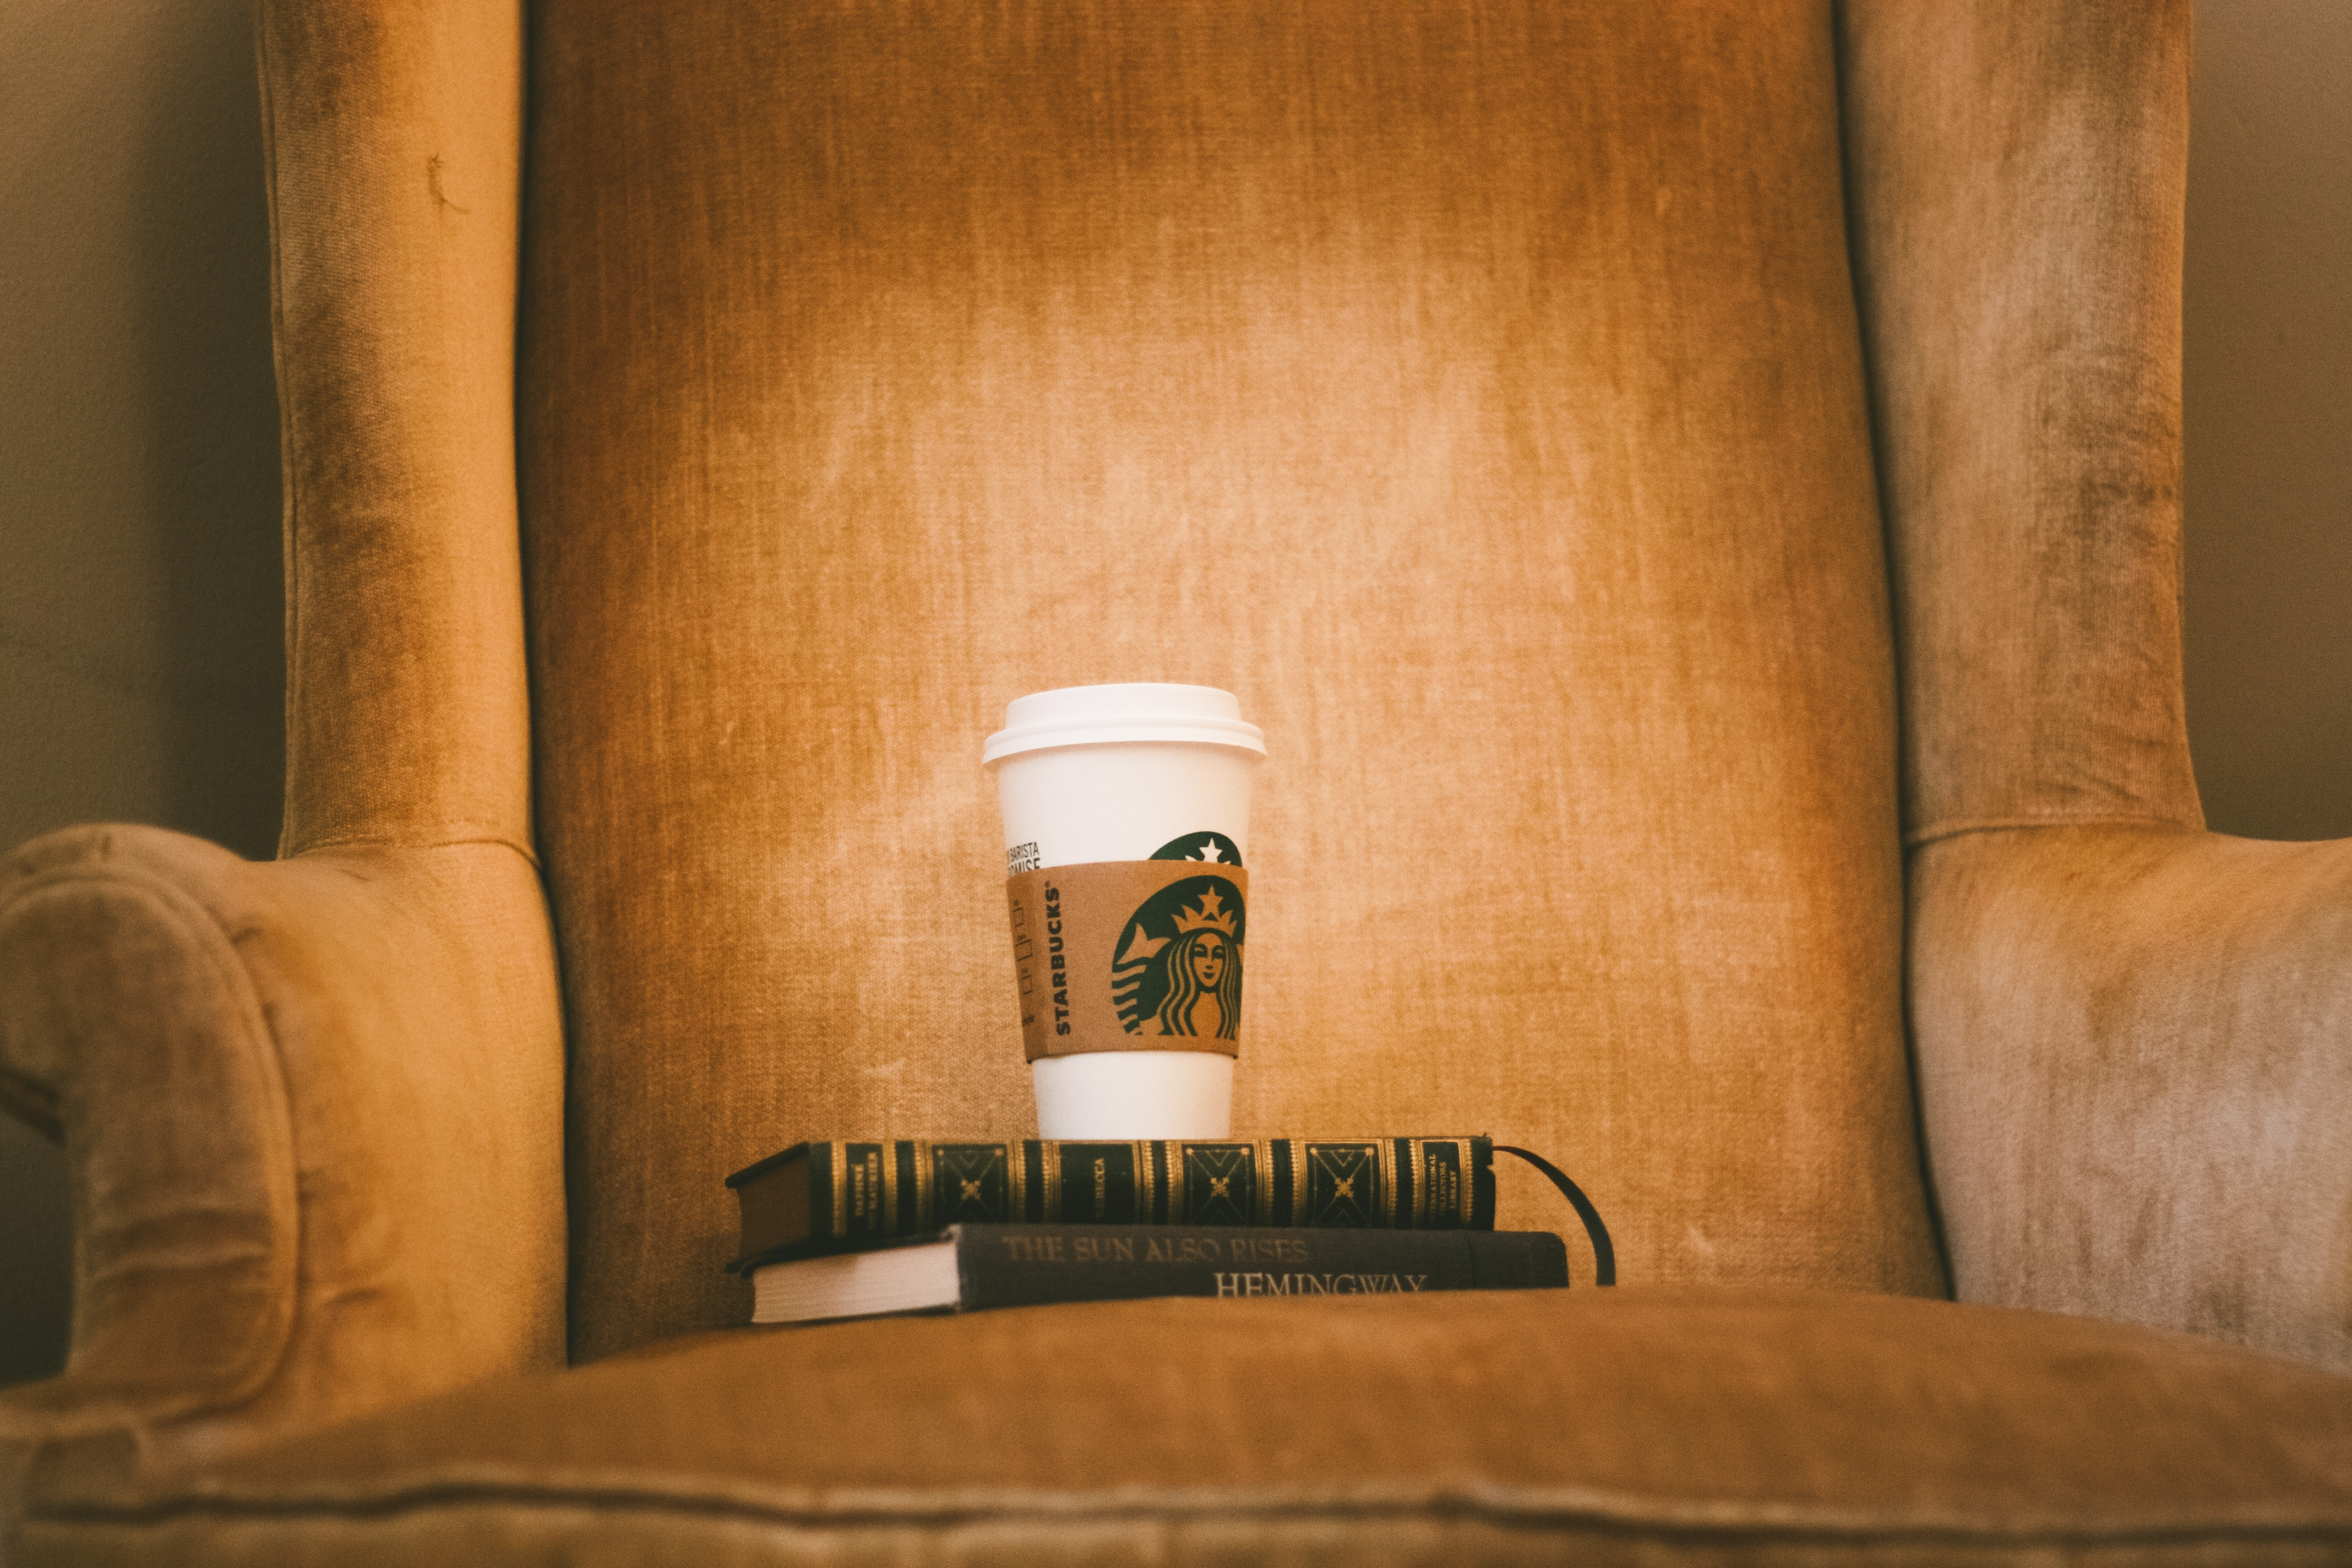 white Starbuck plastic cup on brown fabric armchair